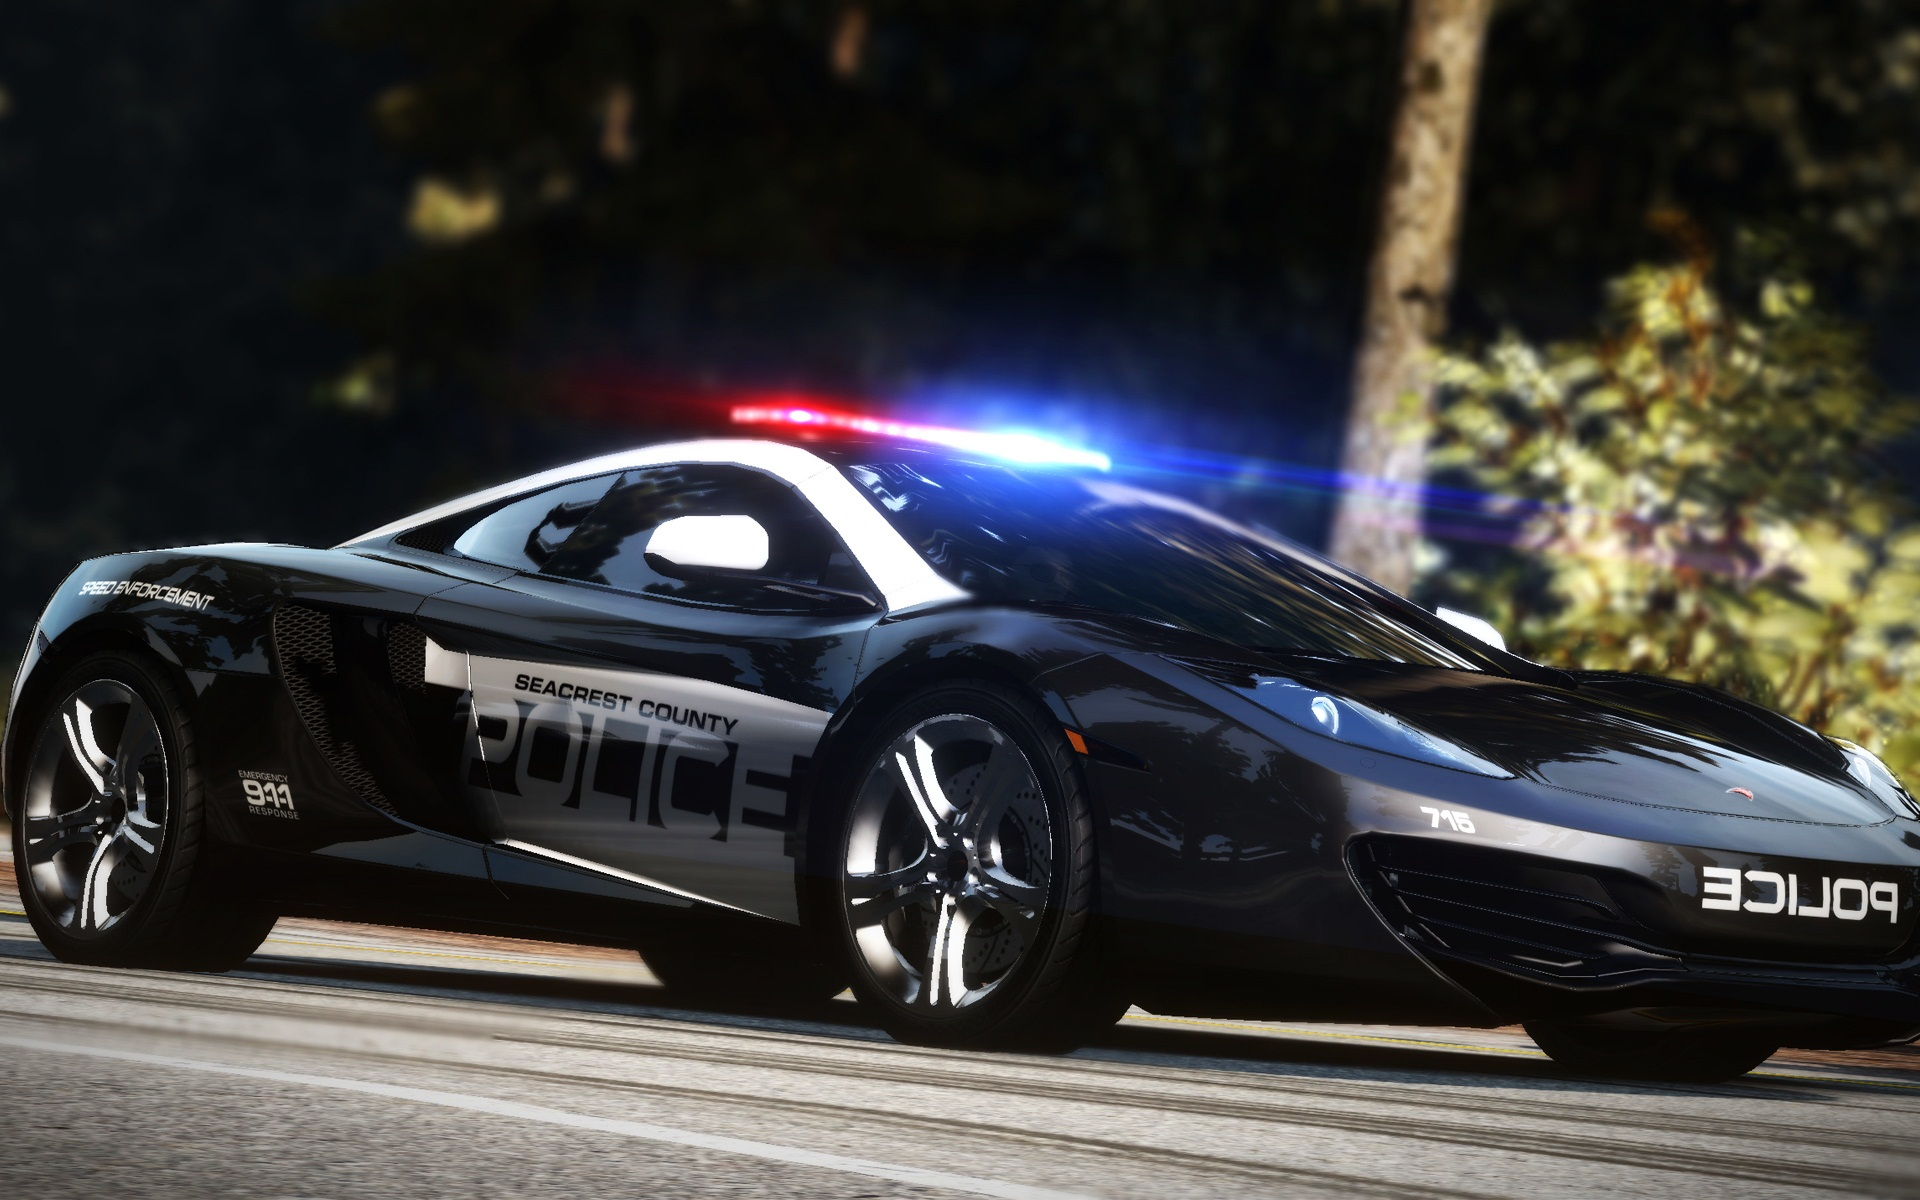 NFS Hot Pursuit Cop Car 302.08 Kb